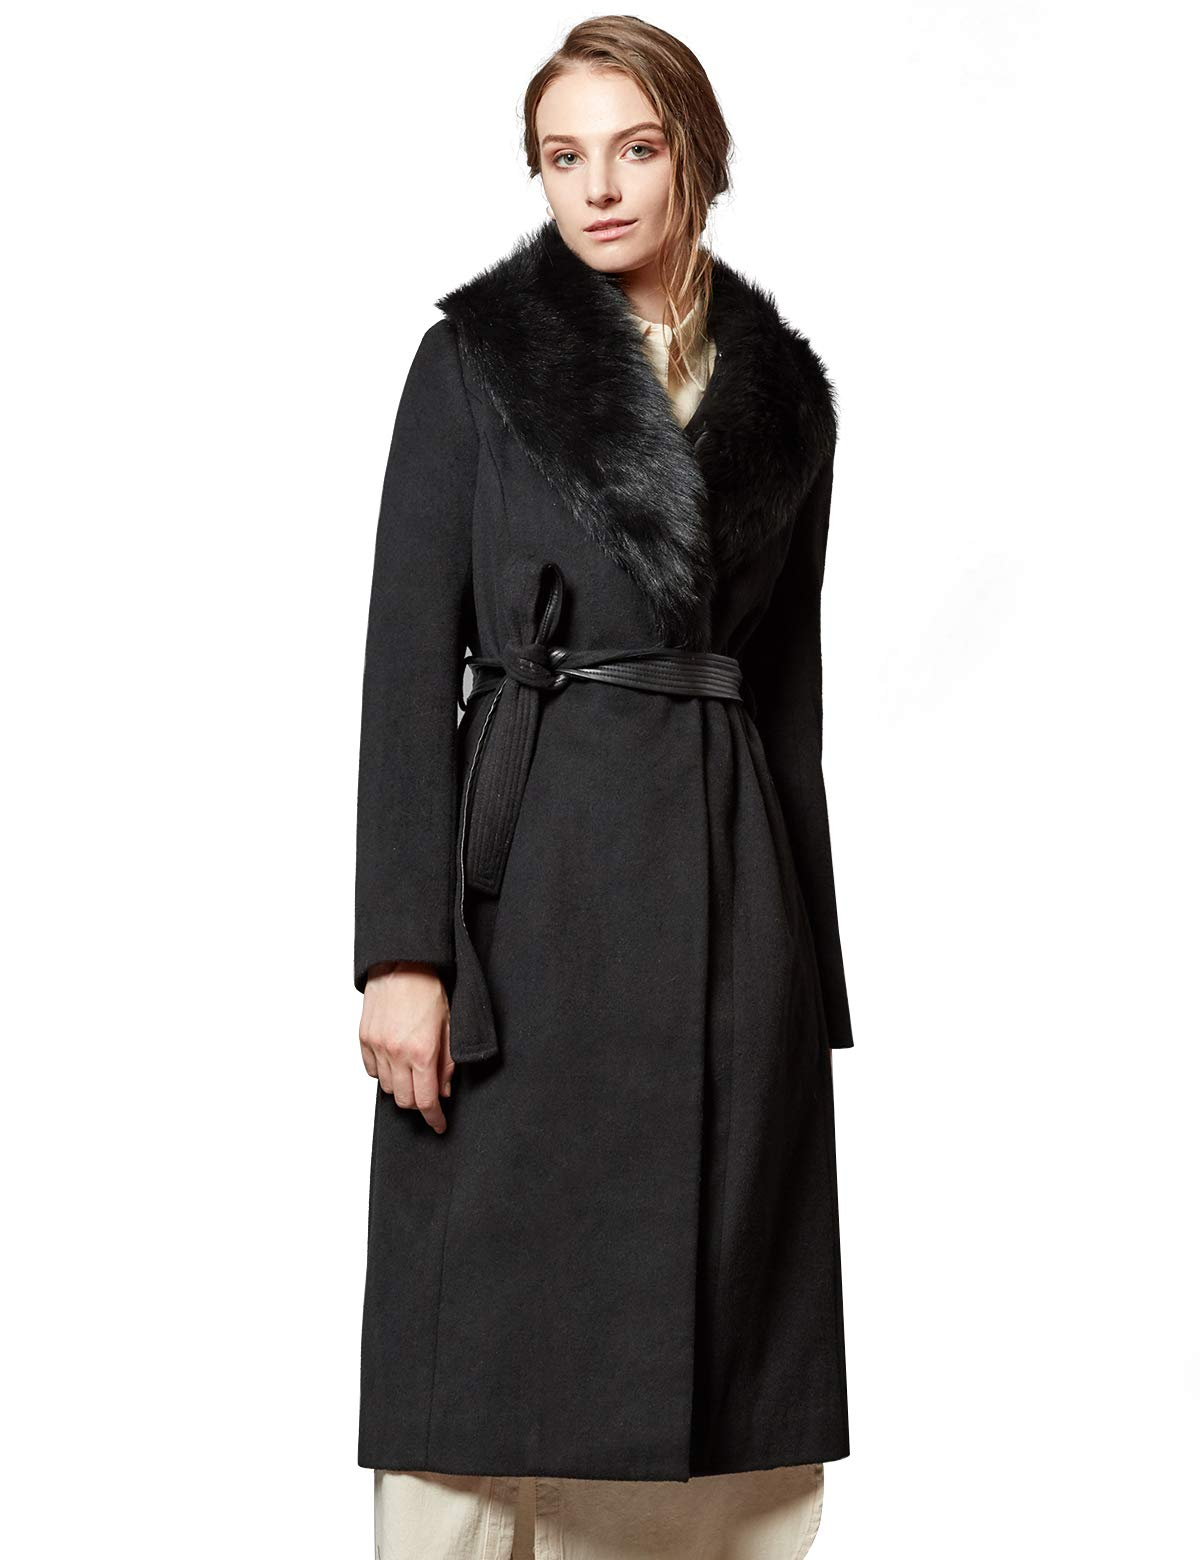 Ecalier Women's Wool Wrap Coat Long Trench Winter Coat with Faux Fur Collar